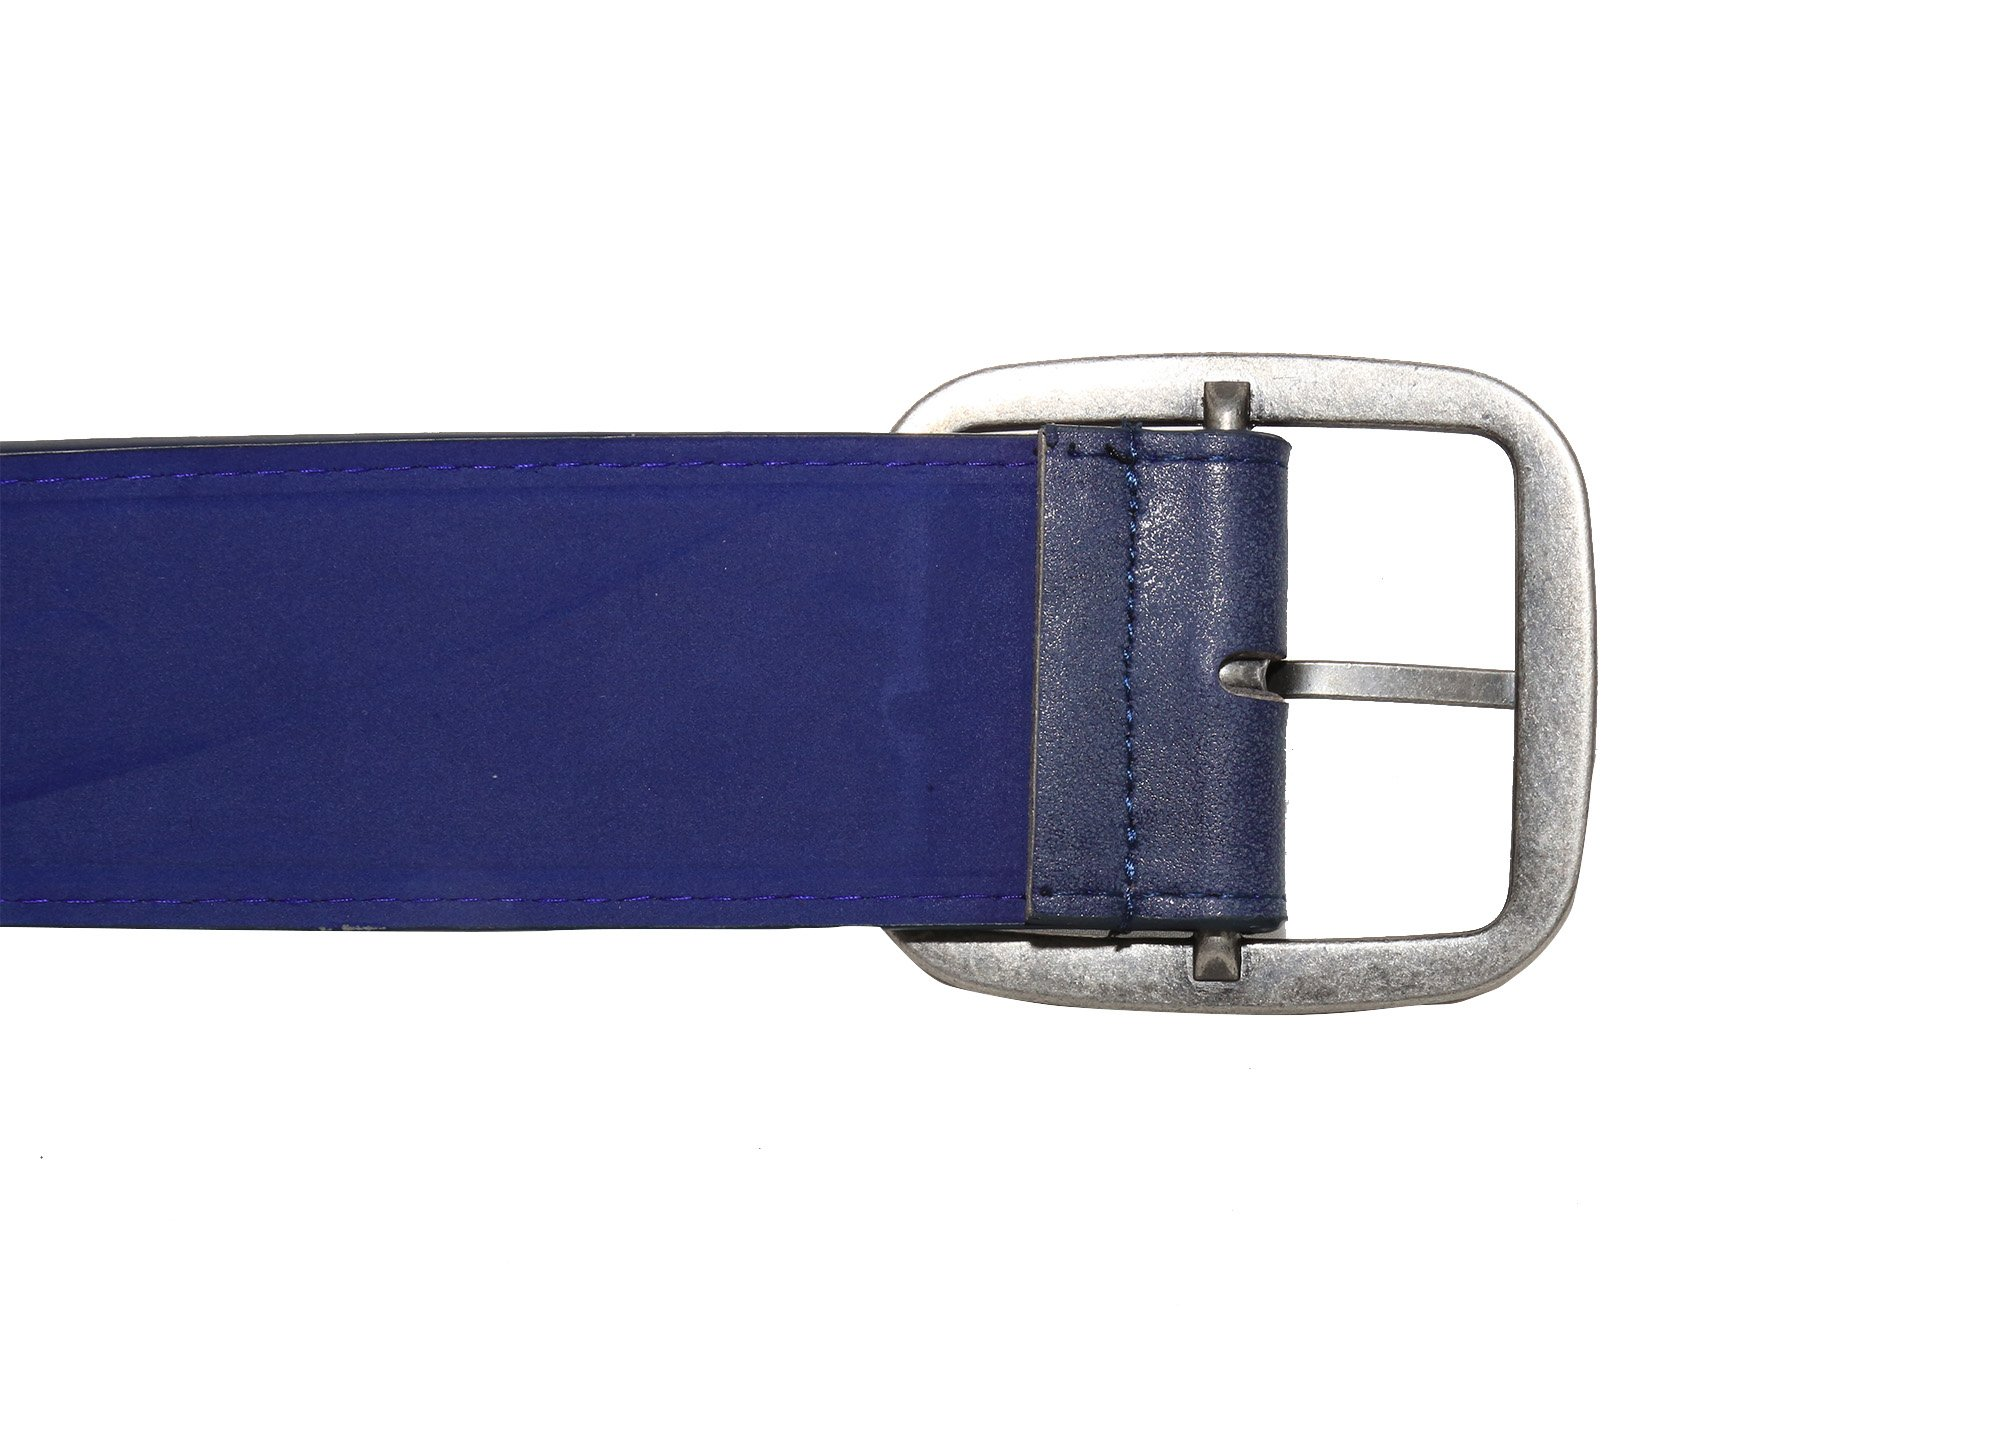 Modeway Women 2'' Wide Suede Leather Silver Square Buckle Adjustable Waist Belts (S-M, Navy-4#) by Modeway (Image #4)